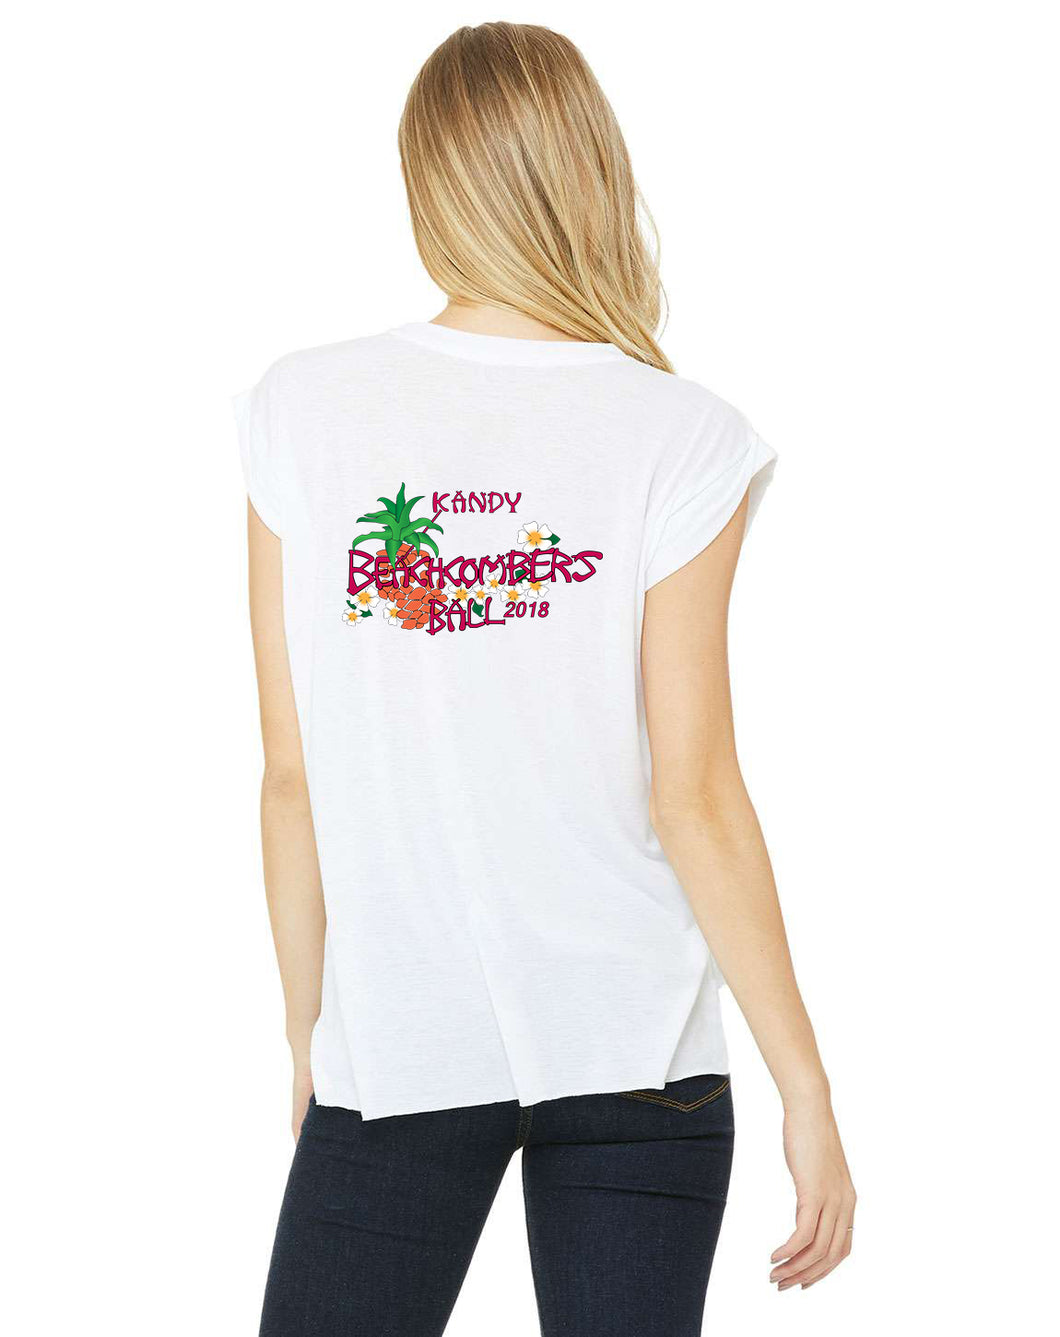 Beachcombers Woman's Back Muscle T White